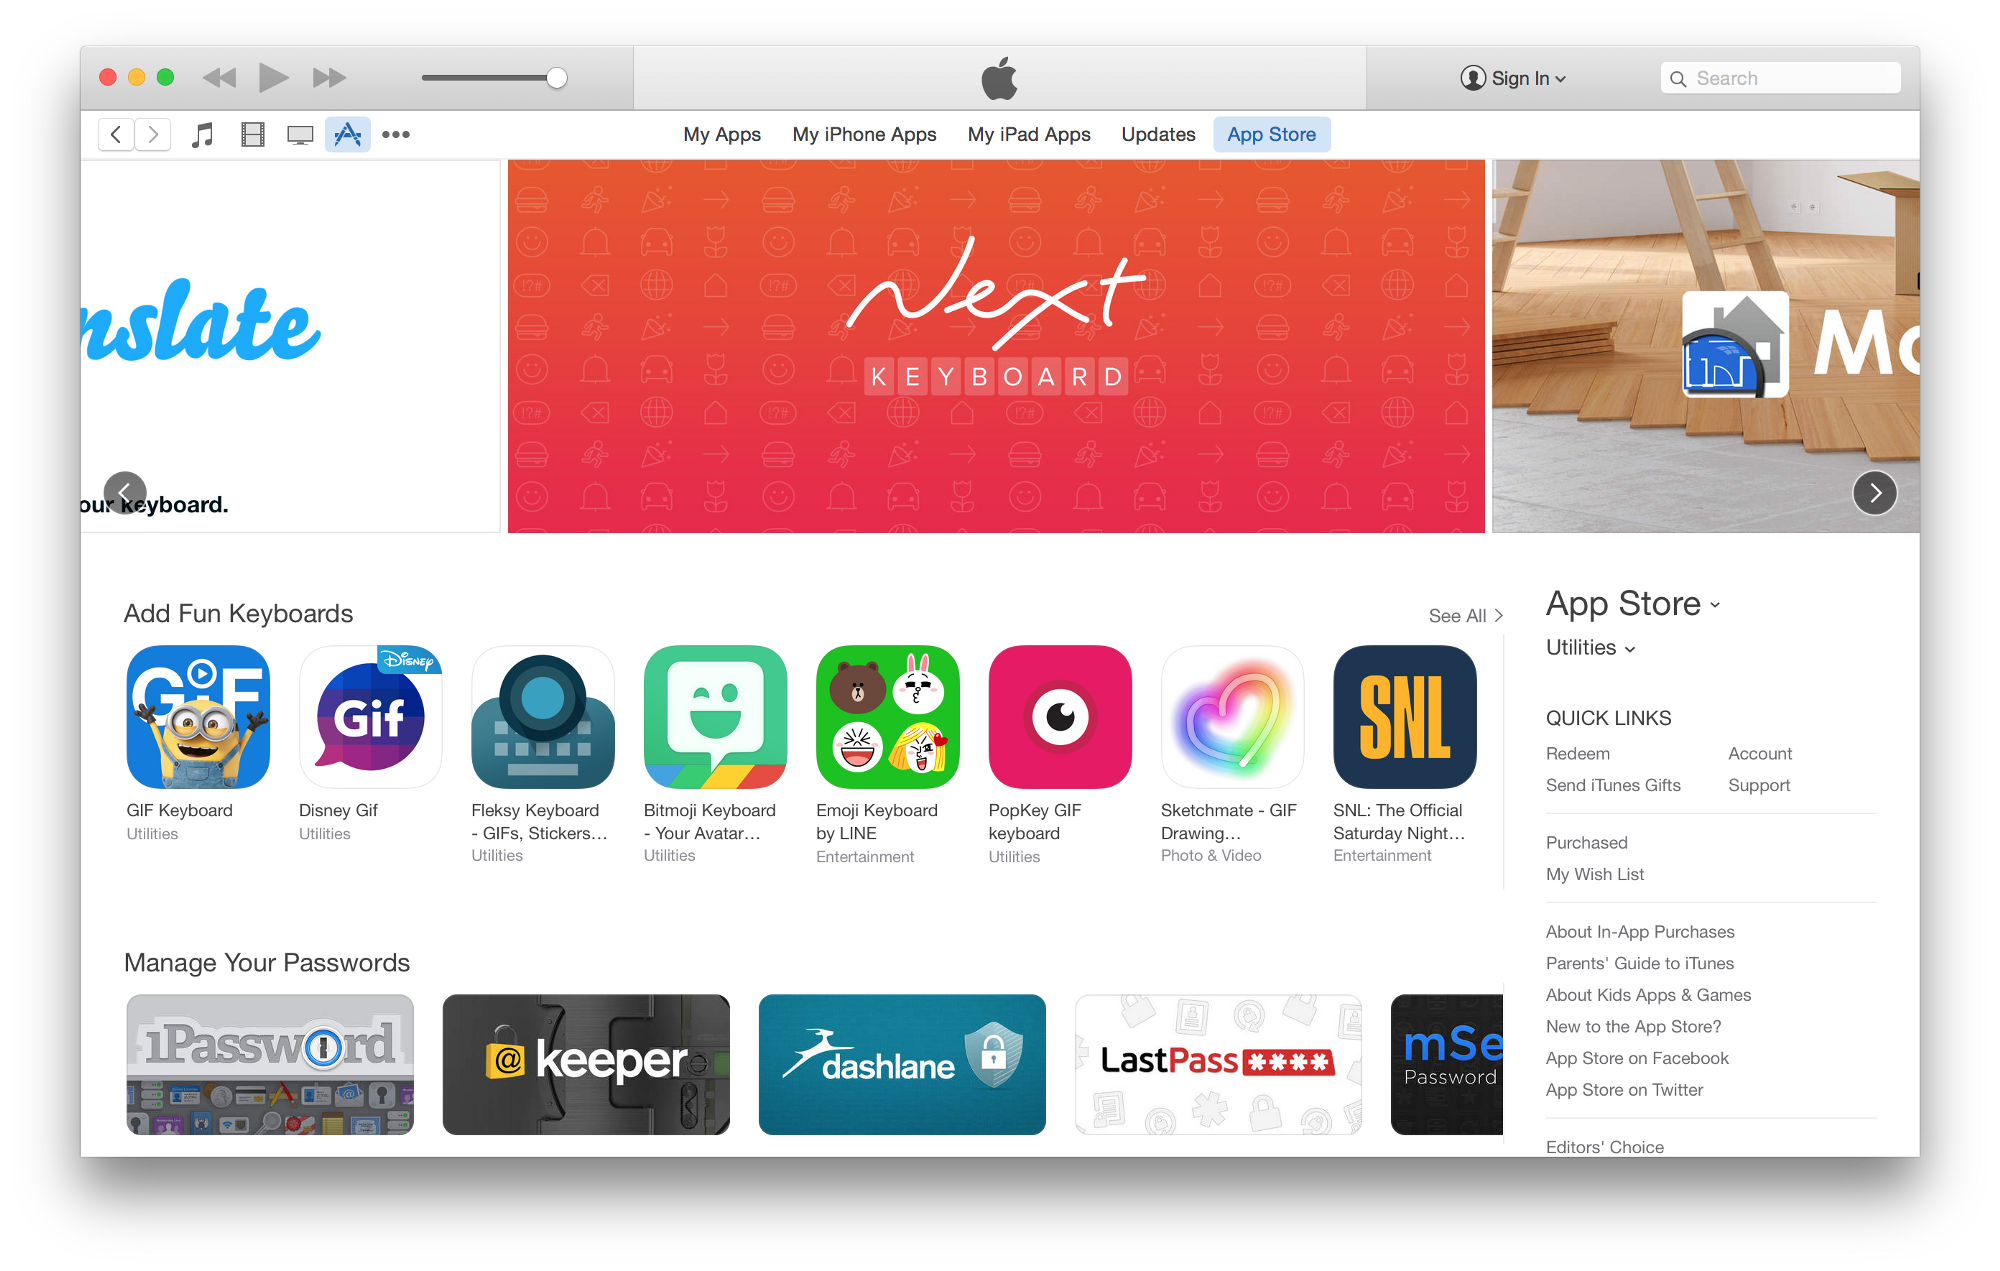 How we launched the #2 app on the App Store